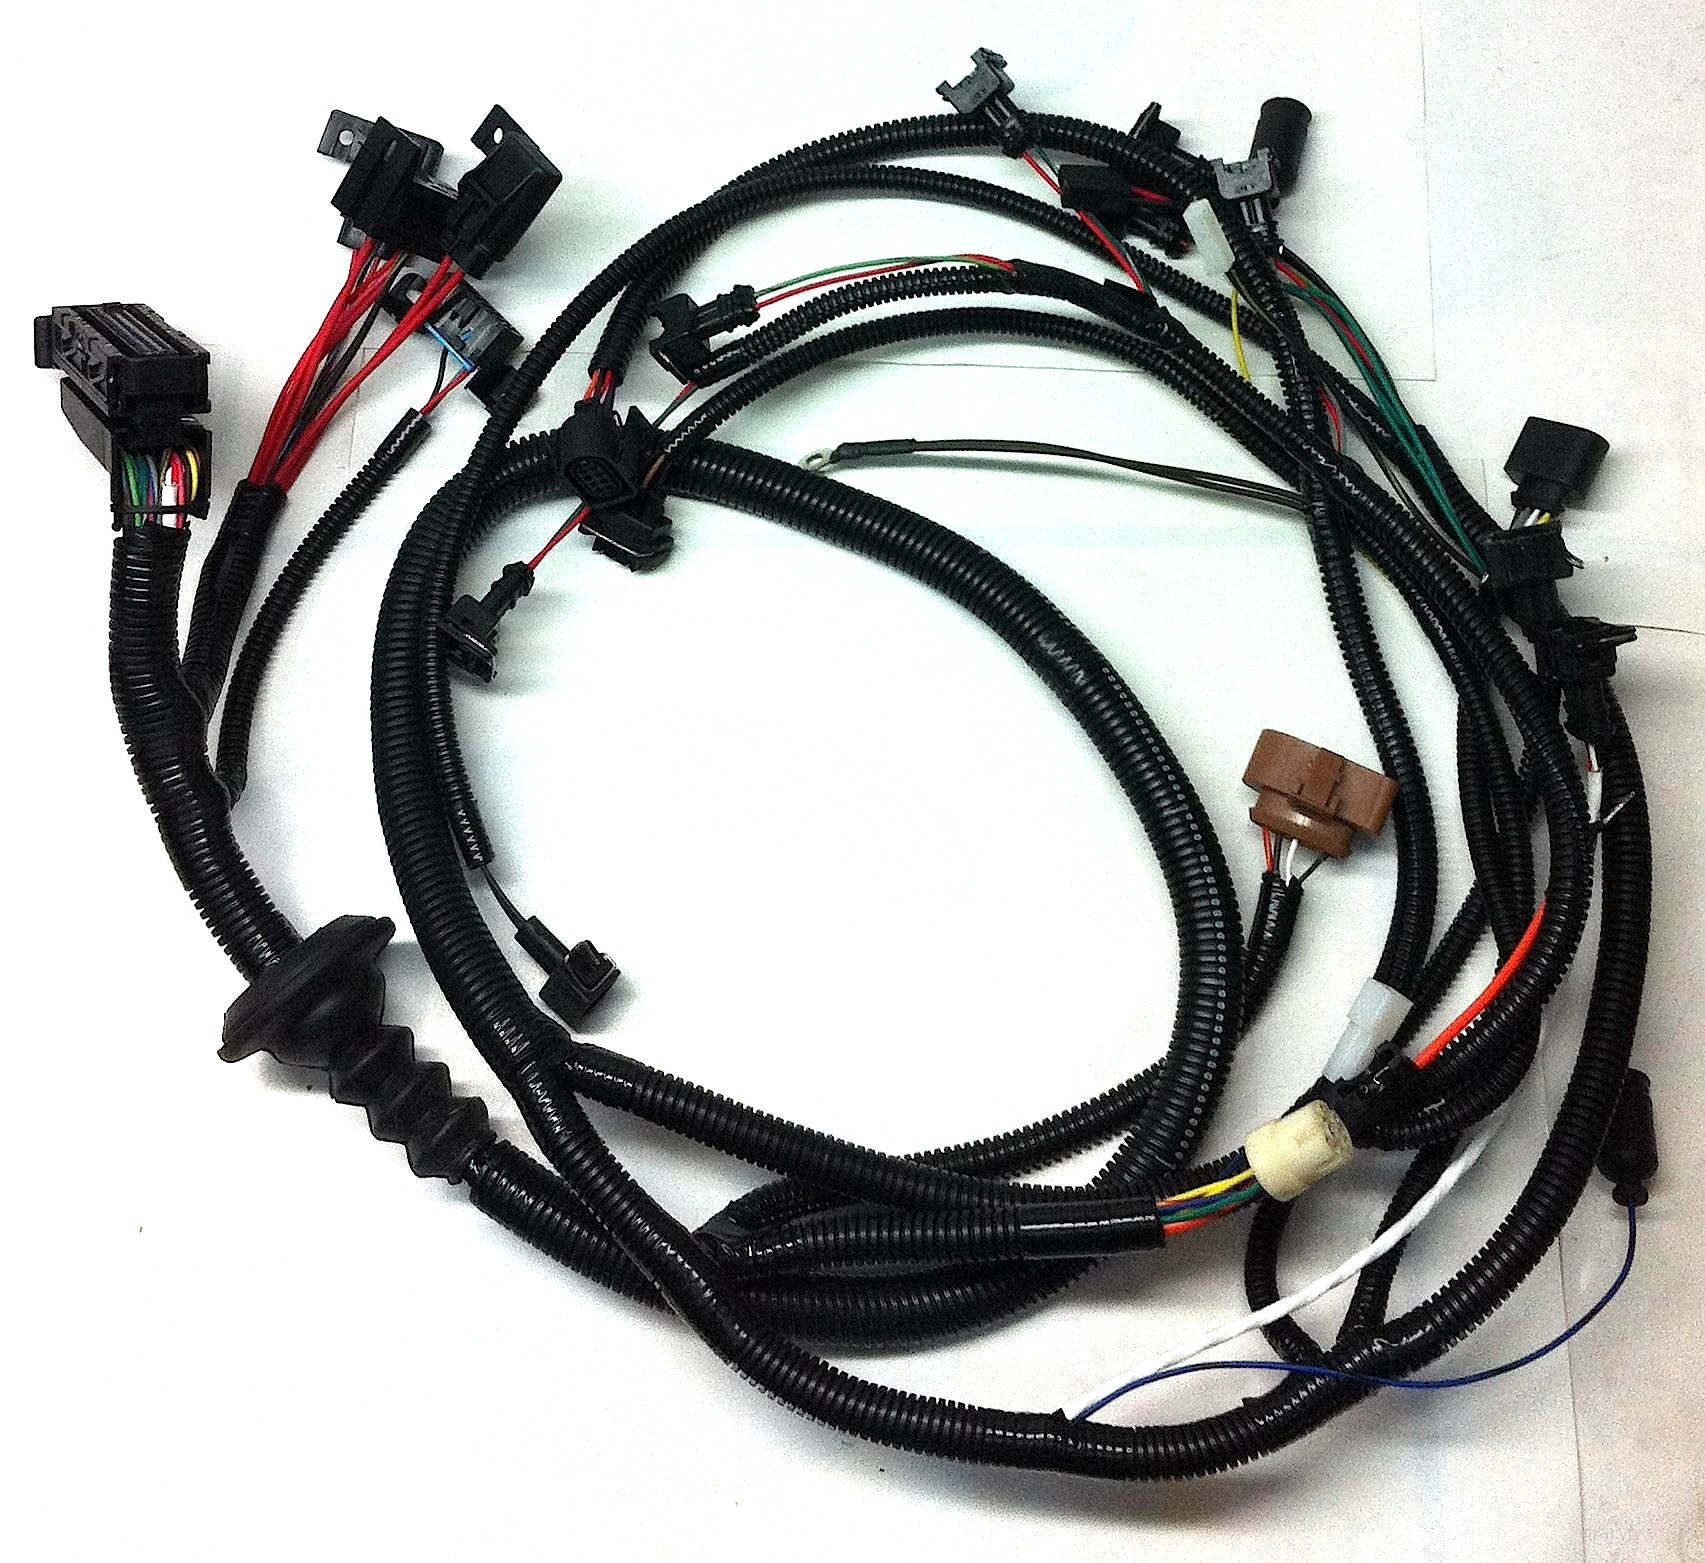 Wiring_Harness_2LR 2lr tiico conversion wiring harness foreign auto & supply, inc wire harness supplies at eliteediting.co